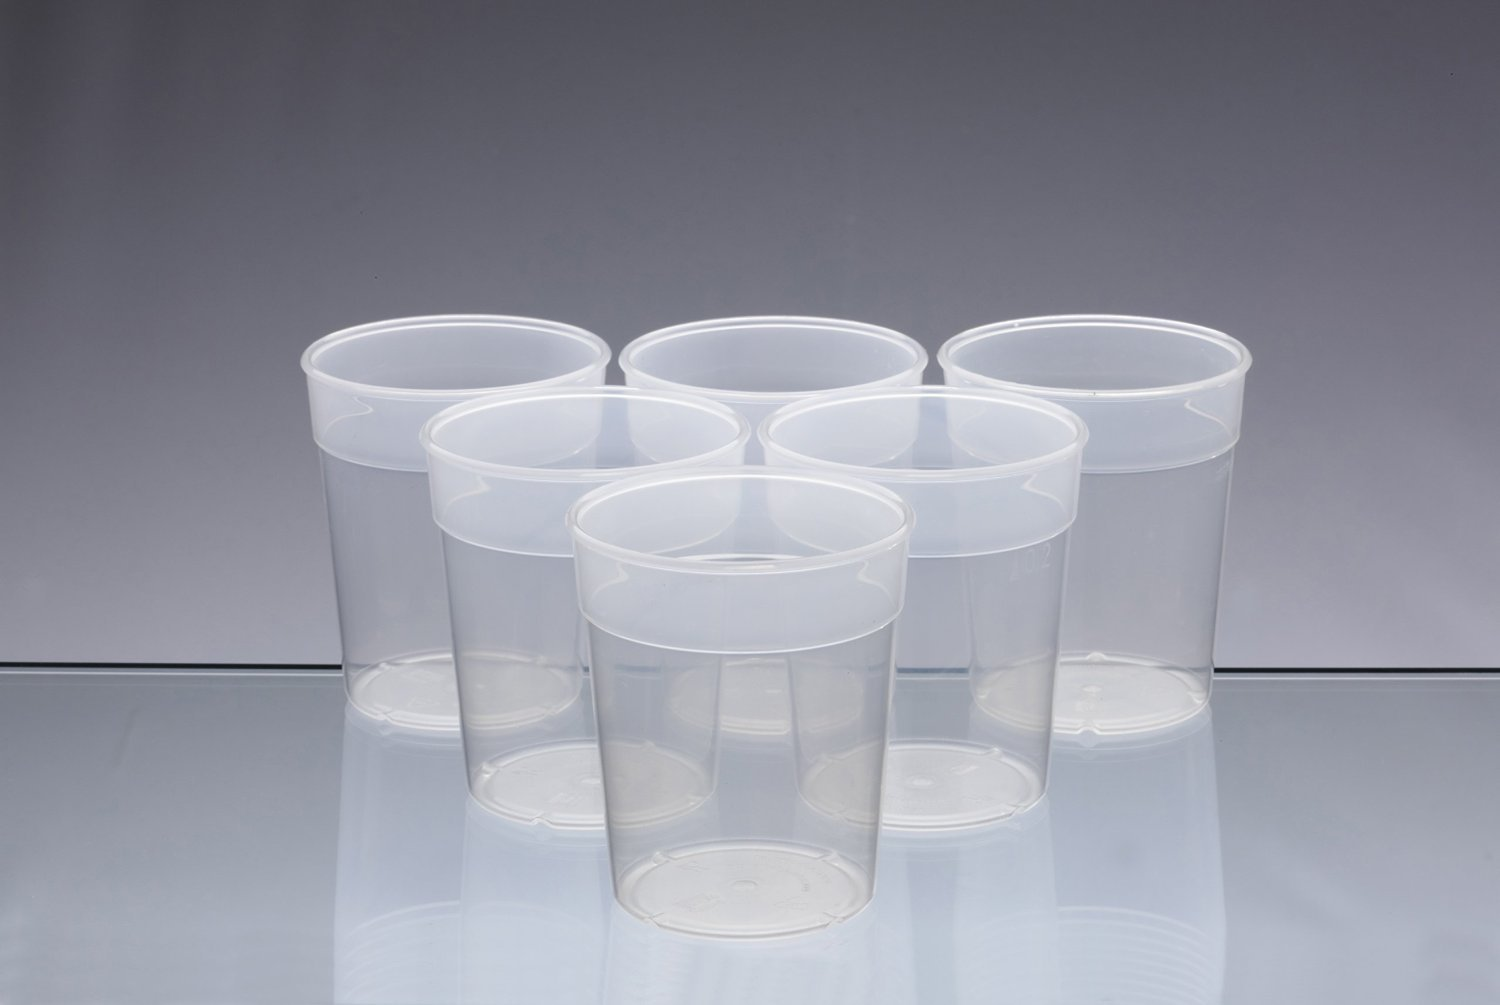 Dishwasher Safe Stackable Transparent Plastic Cups / Beakers / Tumblers 250ml (set of 6) AIOS